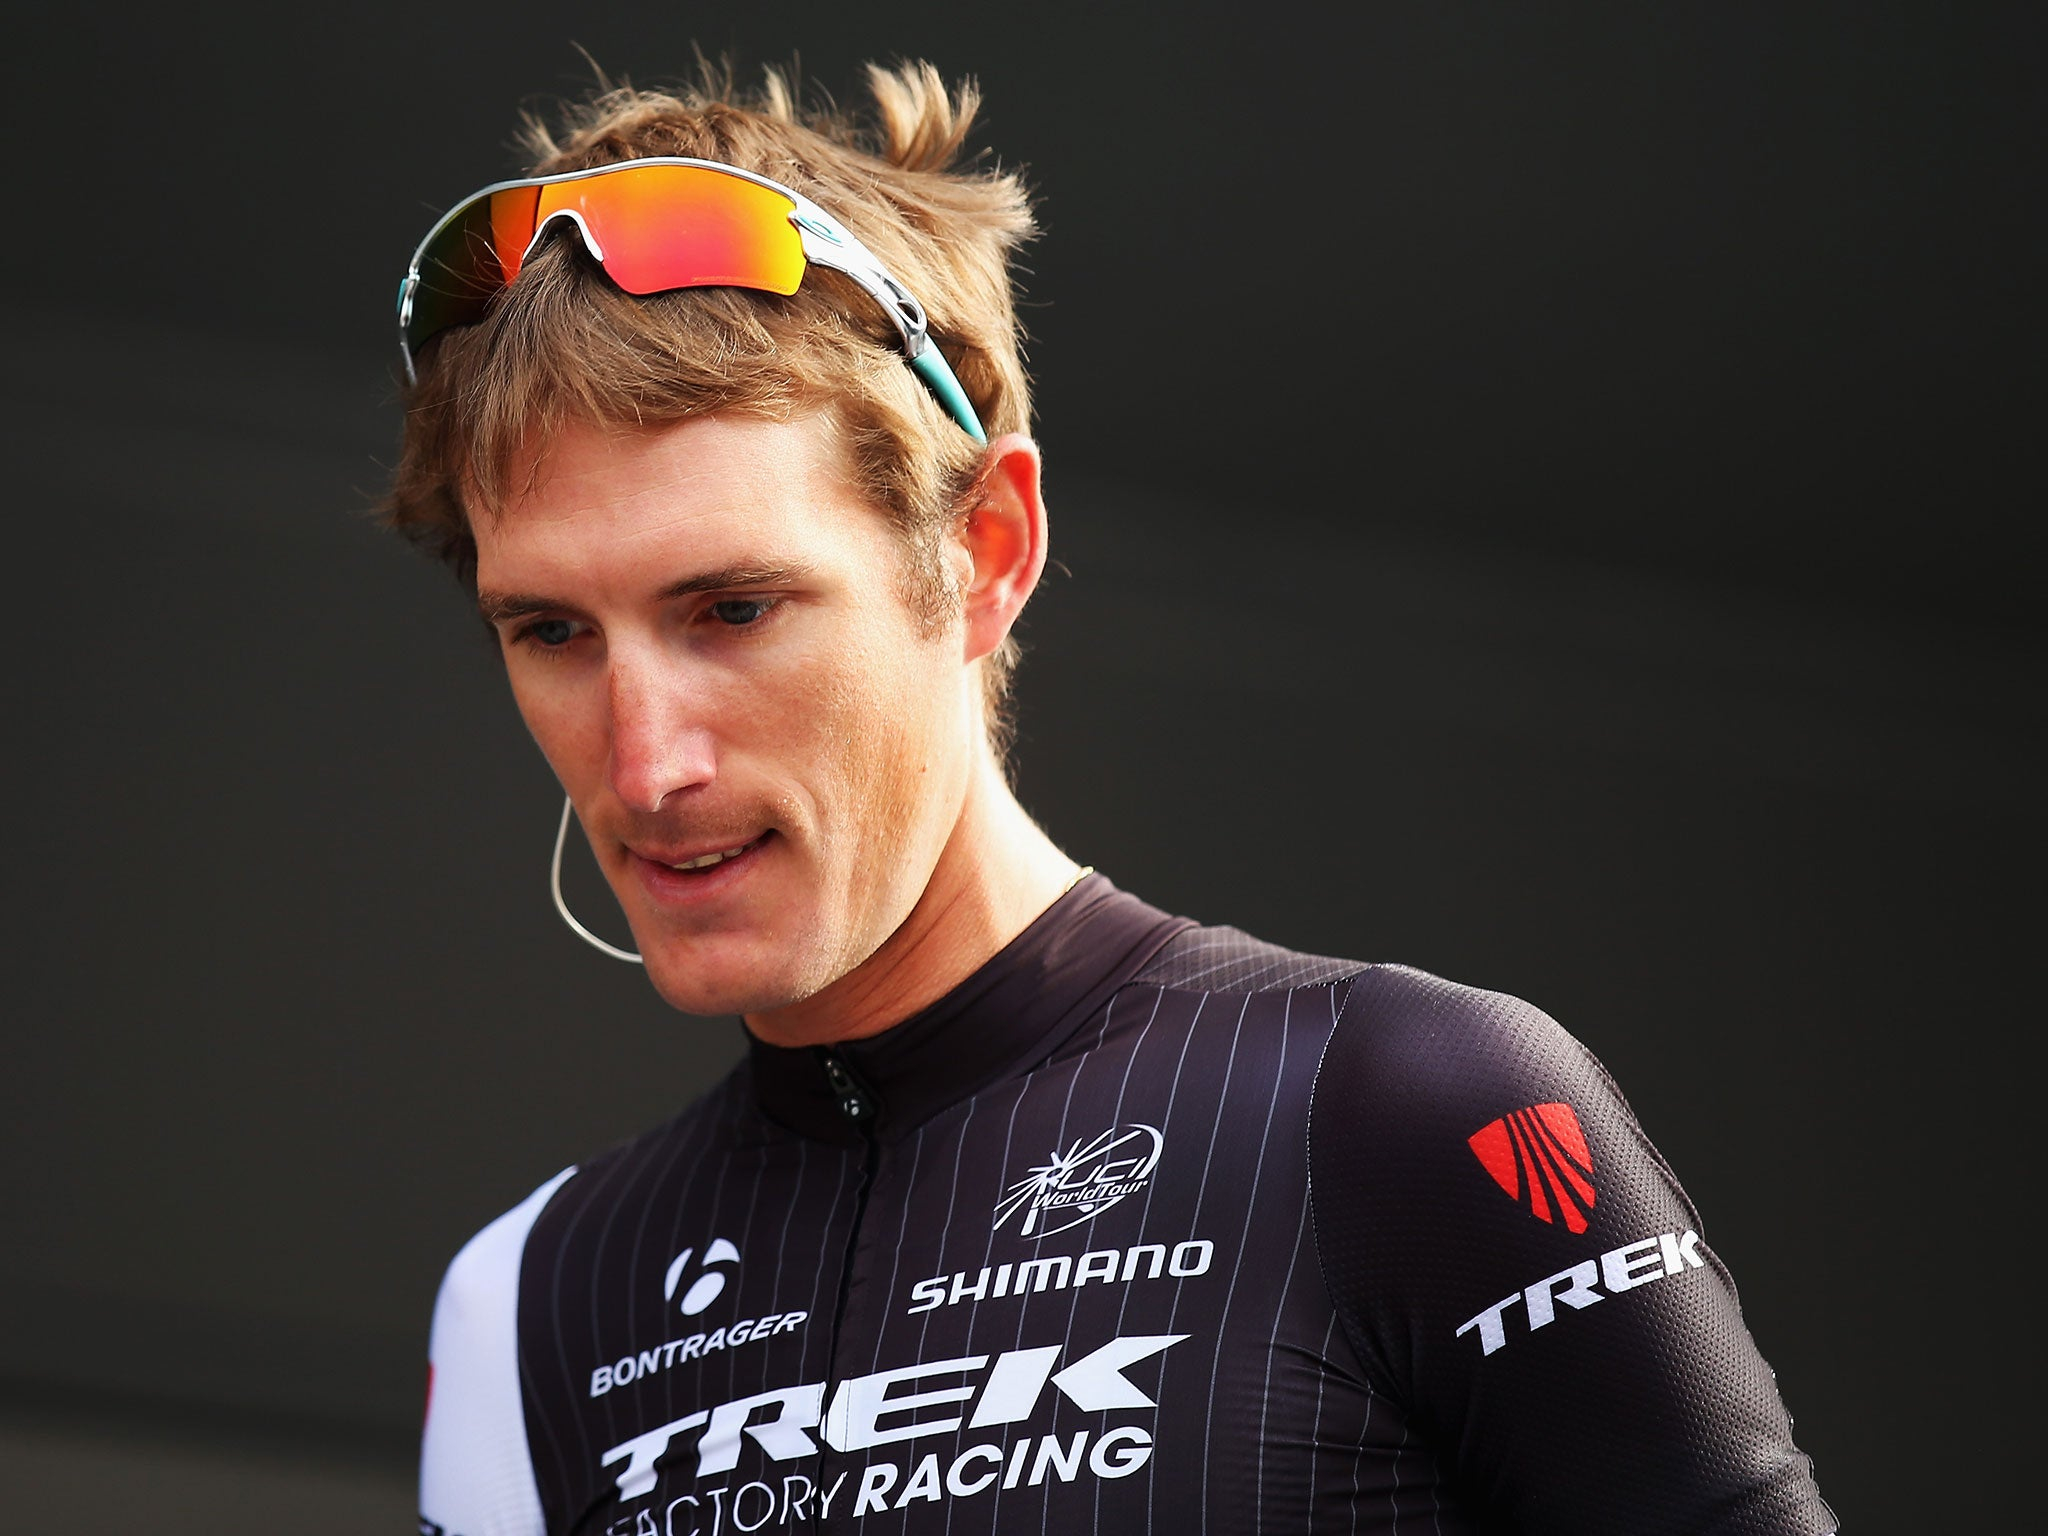 Tour de France 2014: Former winner Andy Schleck ruled out ...